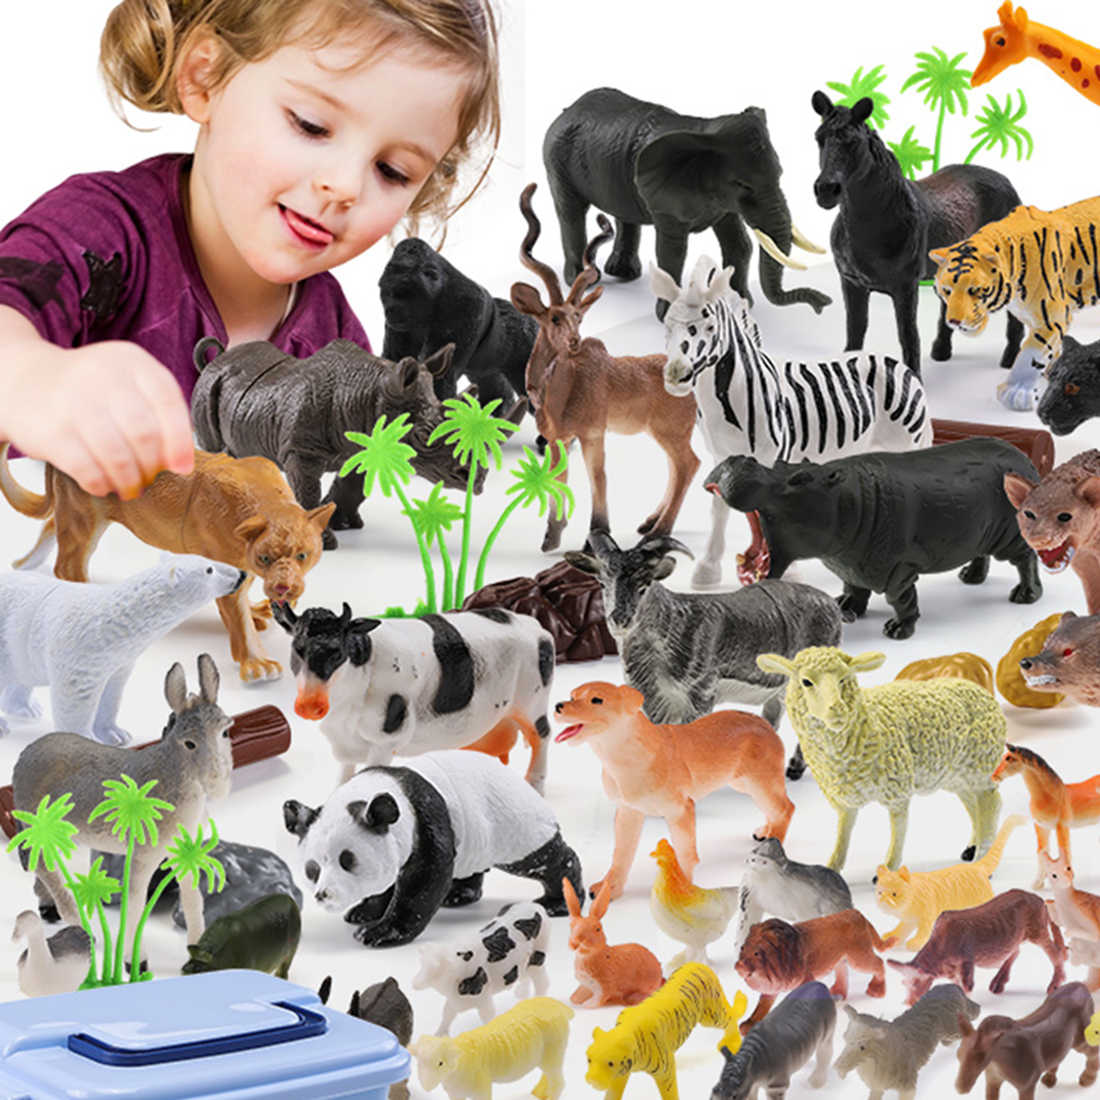 44pcs Echt Wilde Jungle Zoo Farm Animal Serie Jaguar Collectible Model Kids Speelgoed Vroeg Leren Cognitieve Speelgoed Geschenken- willekeurige